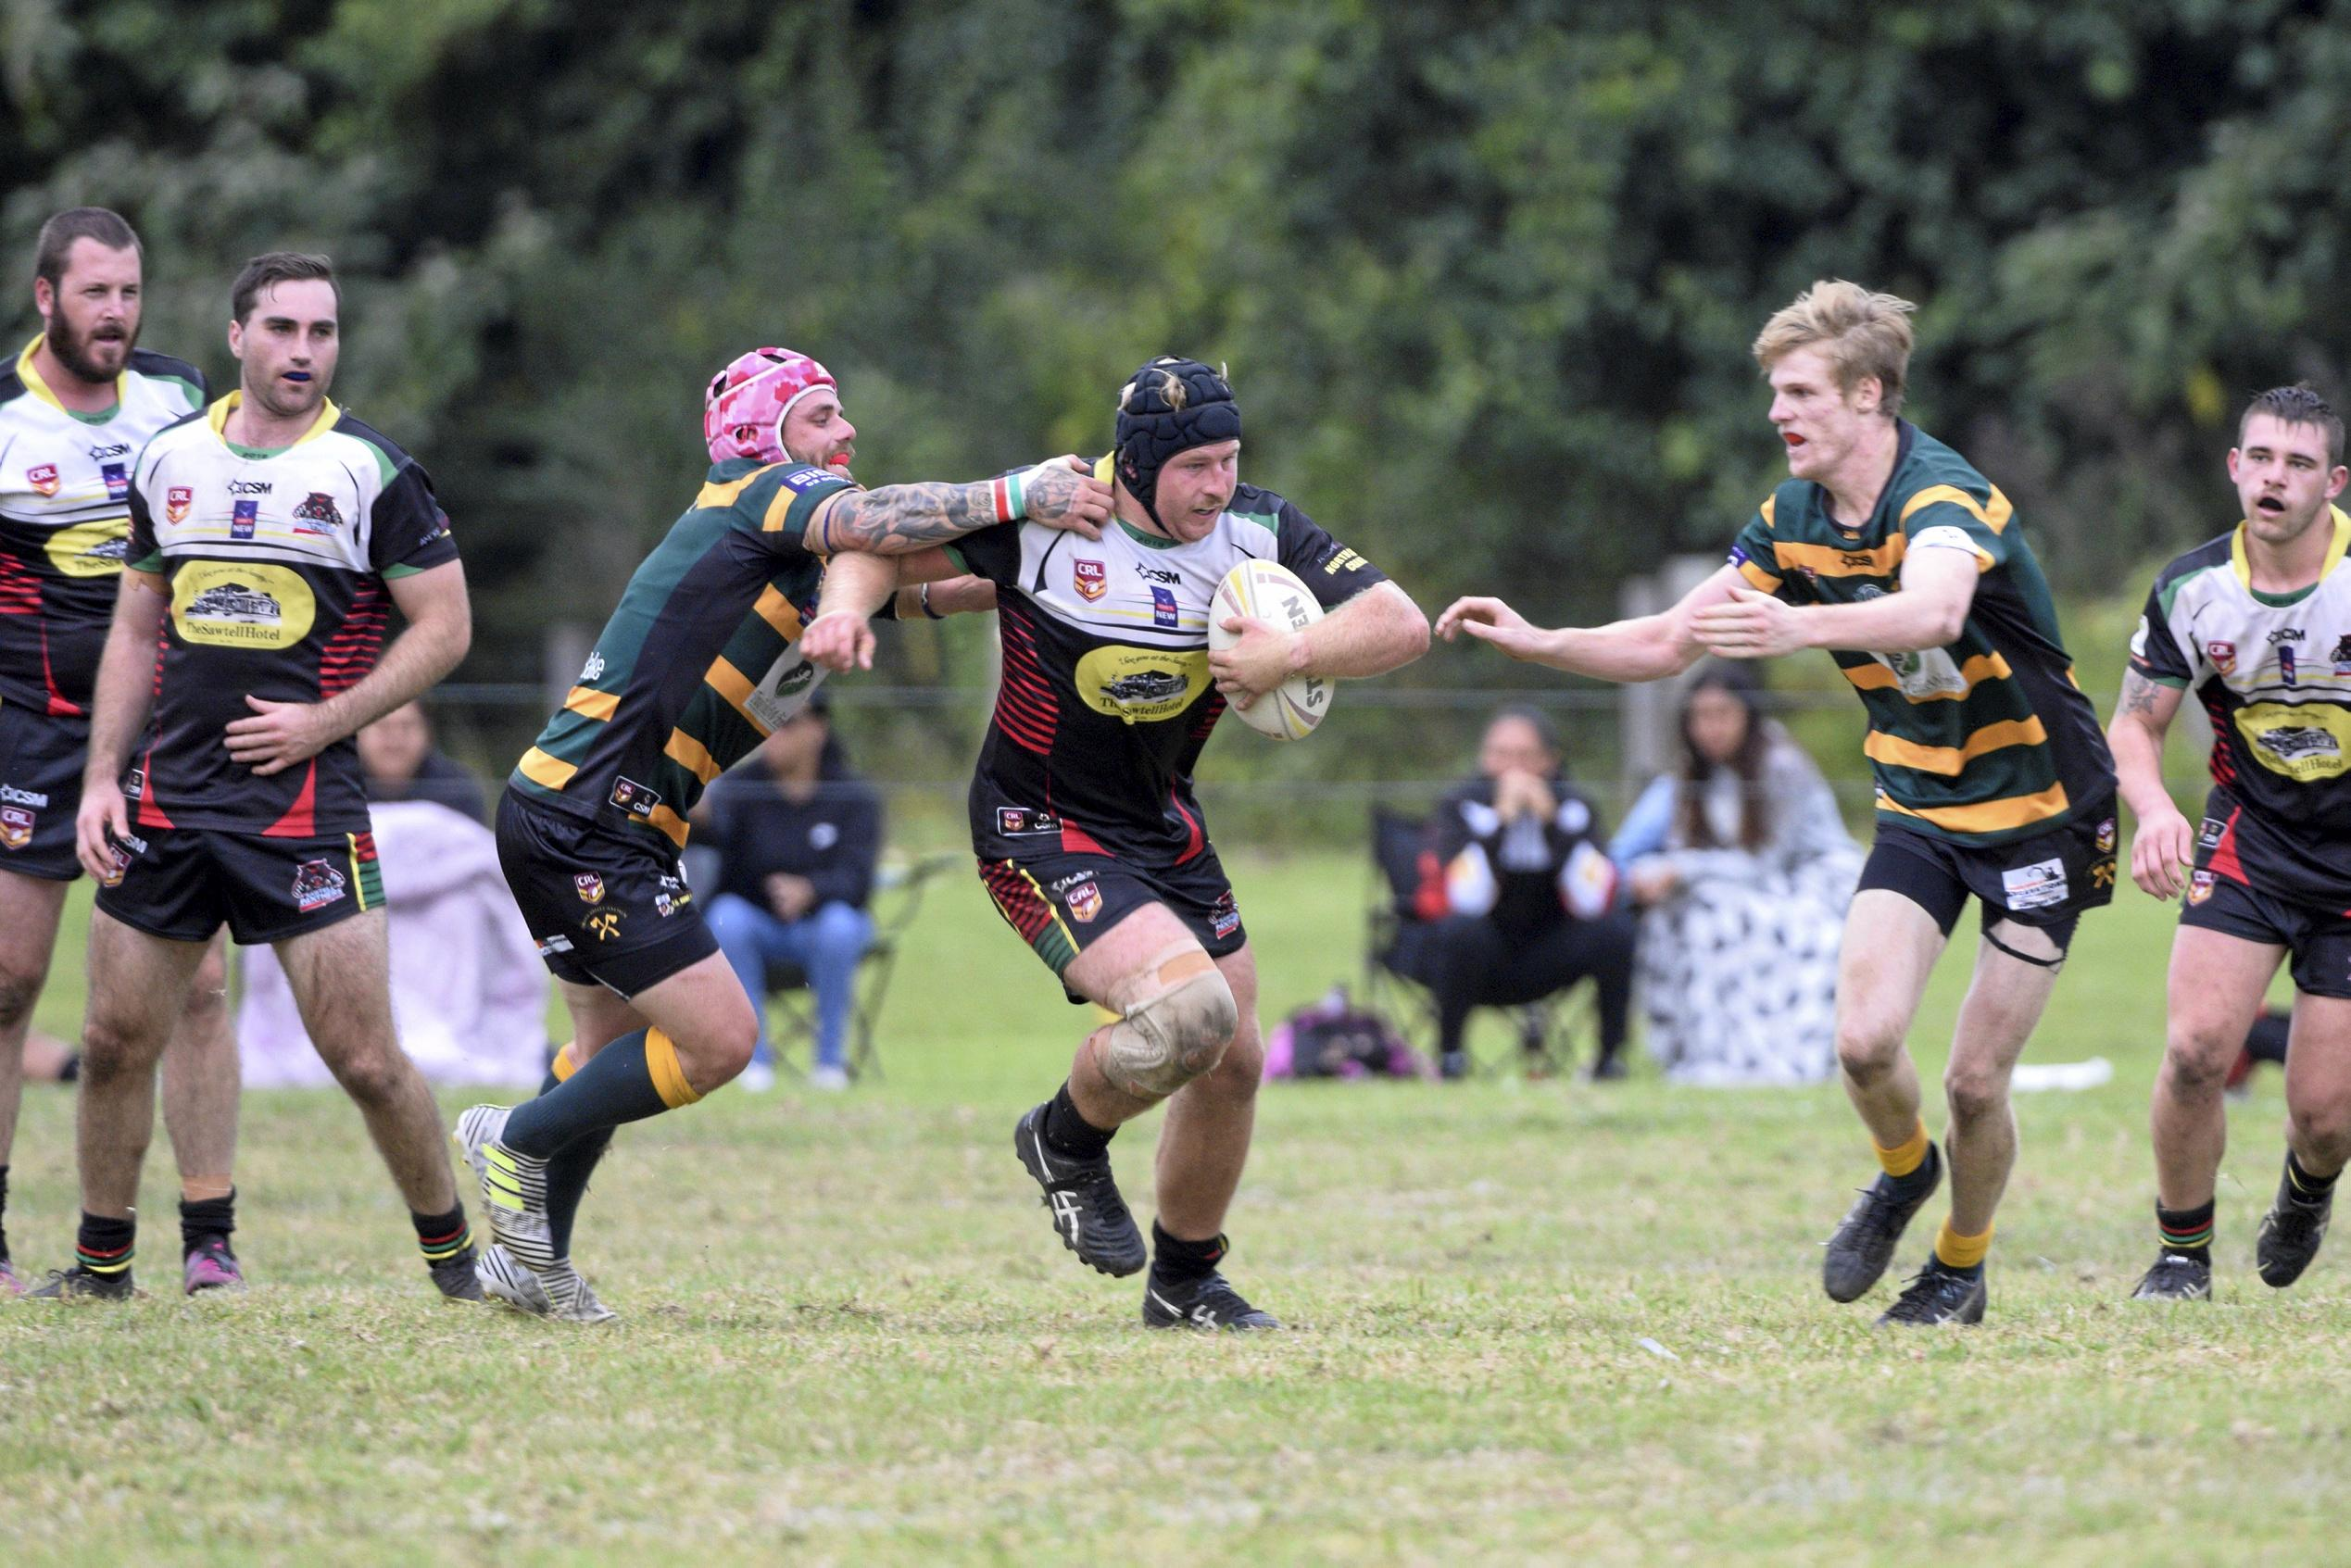 THROUGH THE MIDDLE: Sawtell captain Jedd Mitchell escapes the clutches of Orara Valley pair Rhys Walters and Liam Dunn.